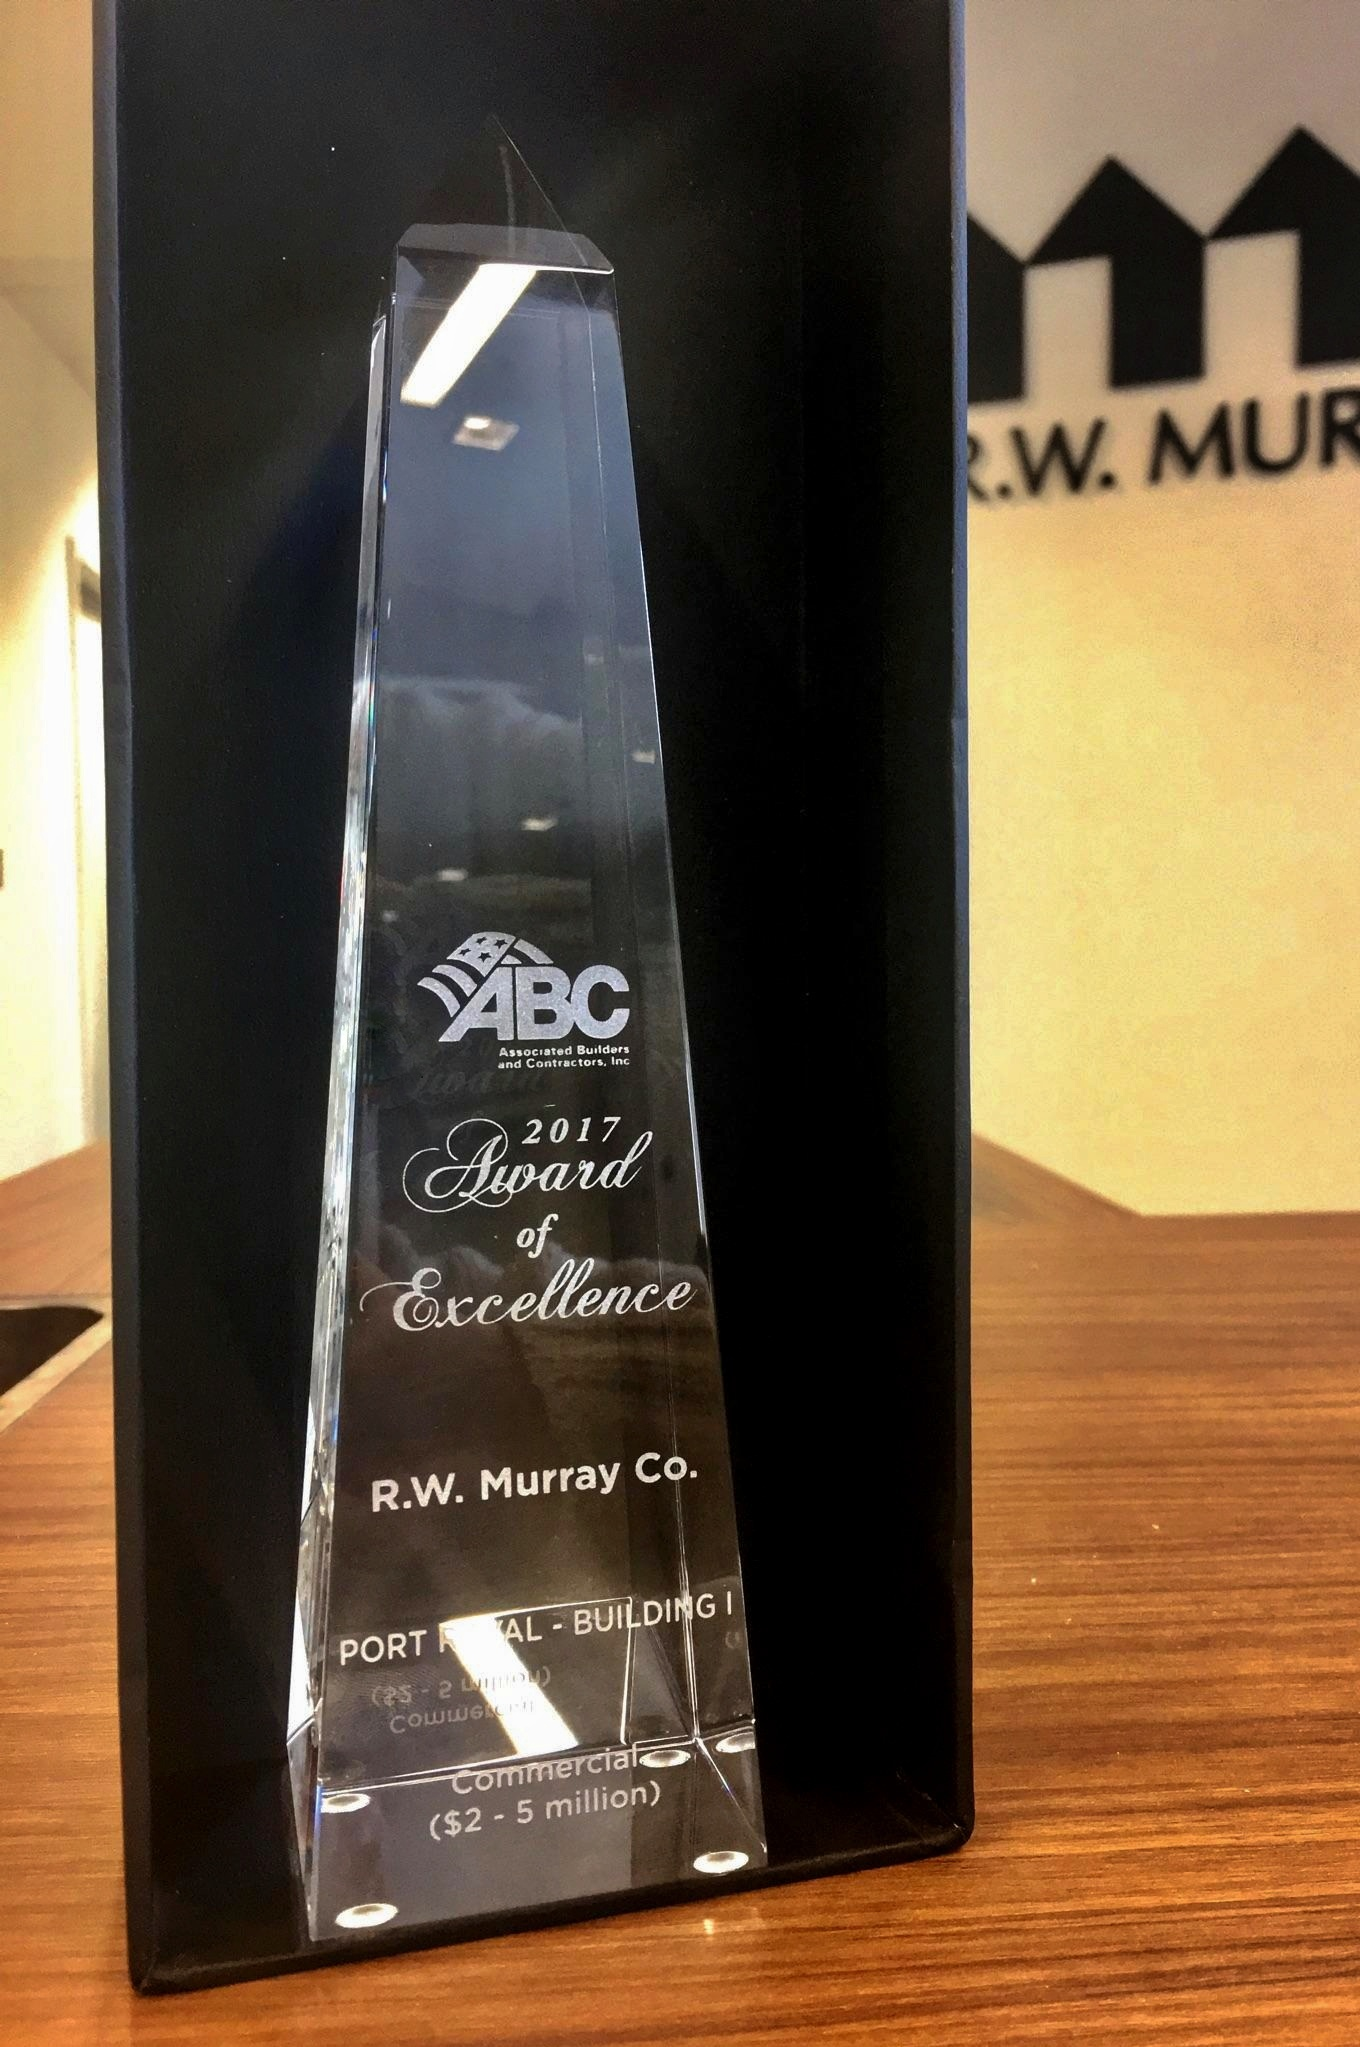 R.W. Murray Co. Wins Prestigious Building Award